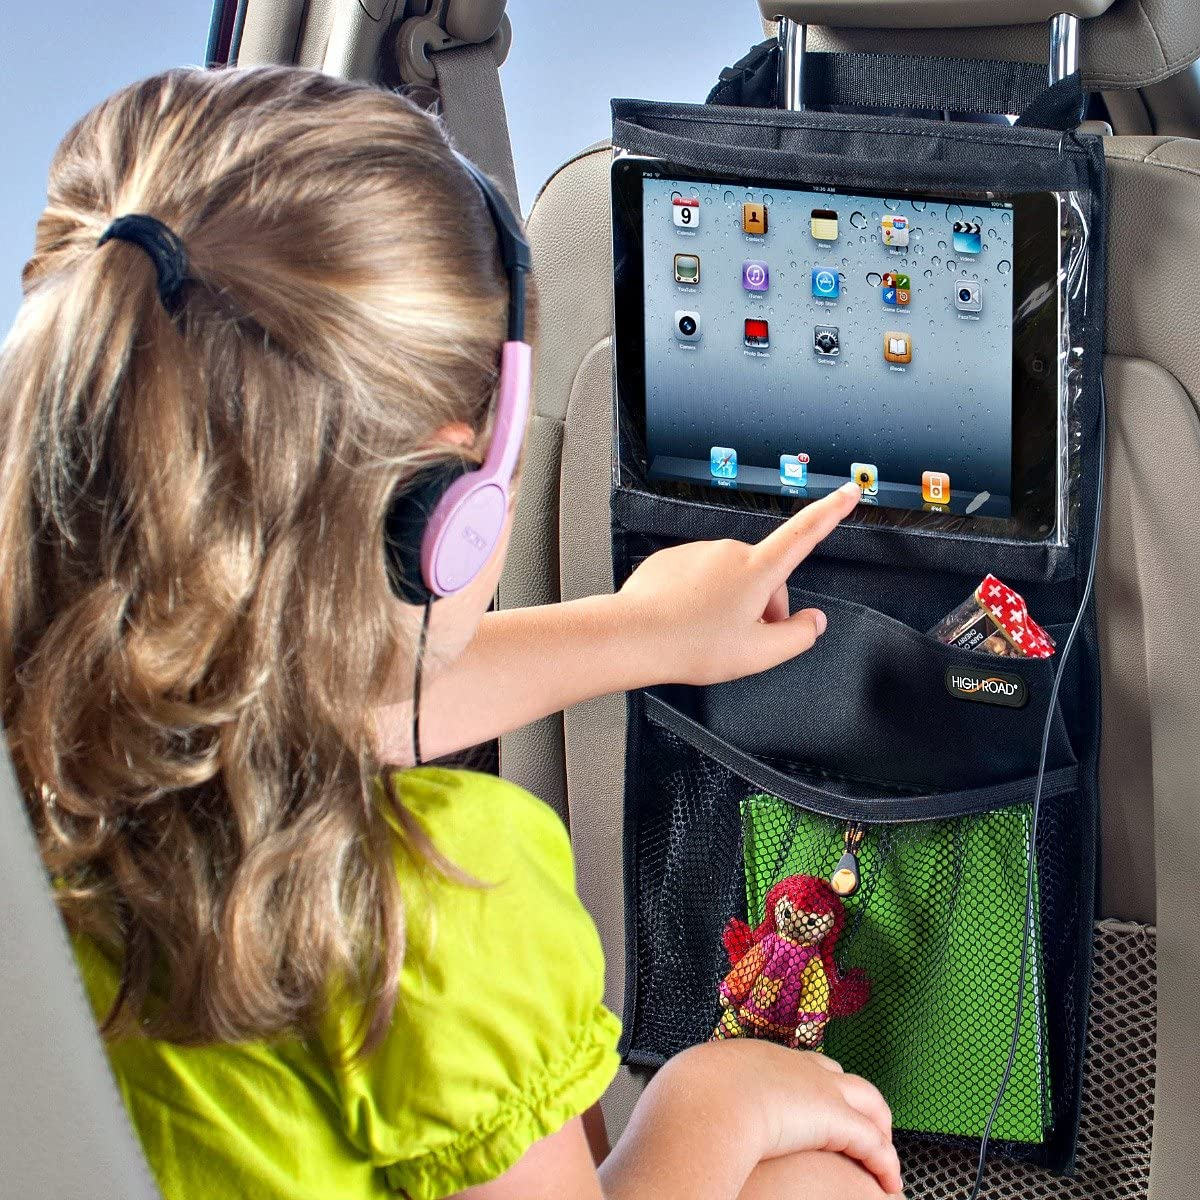 Image showing product mounted behind the drivers seat of a vehicle with a young girl touching icons displayed on the product screen.